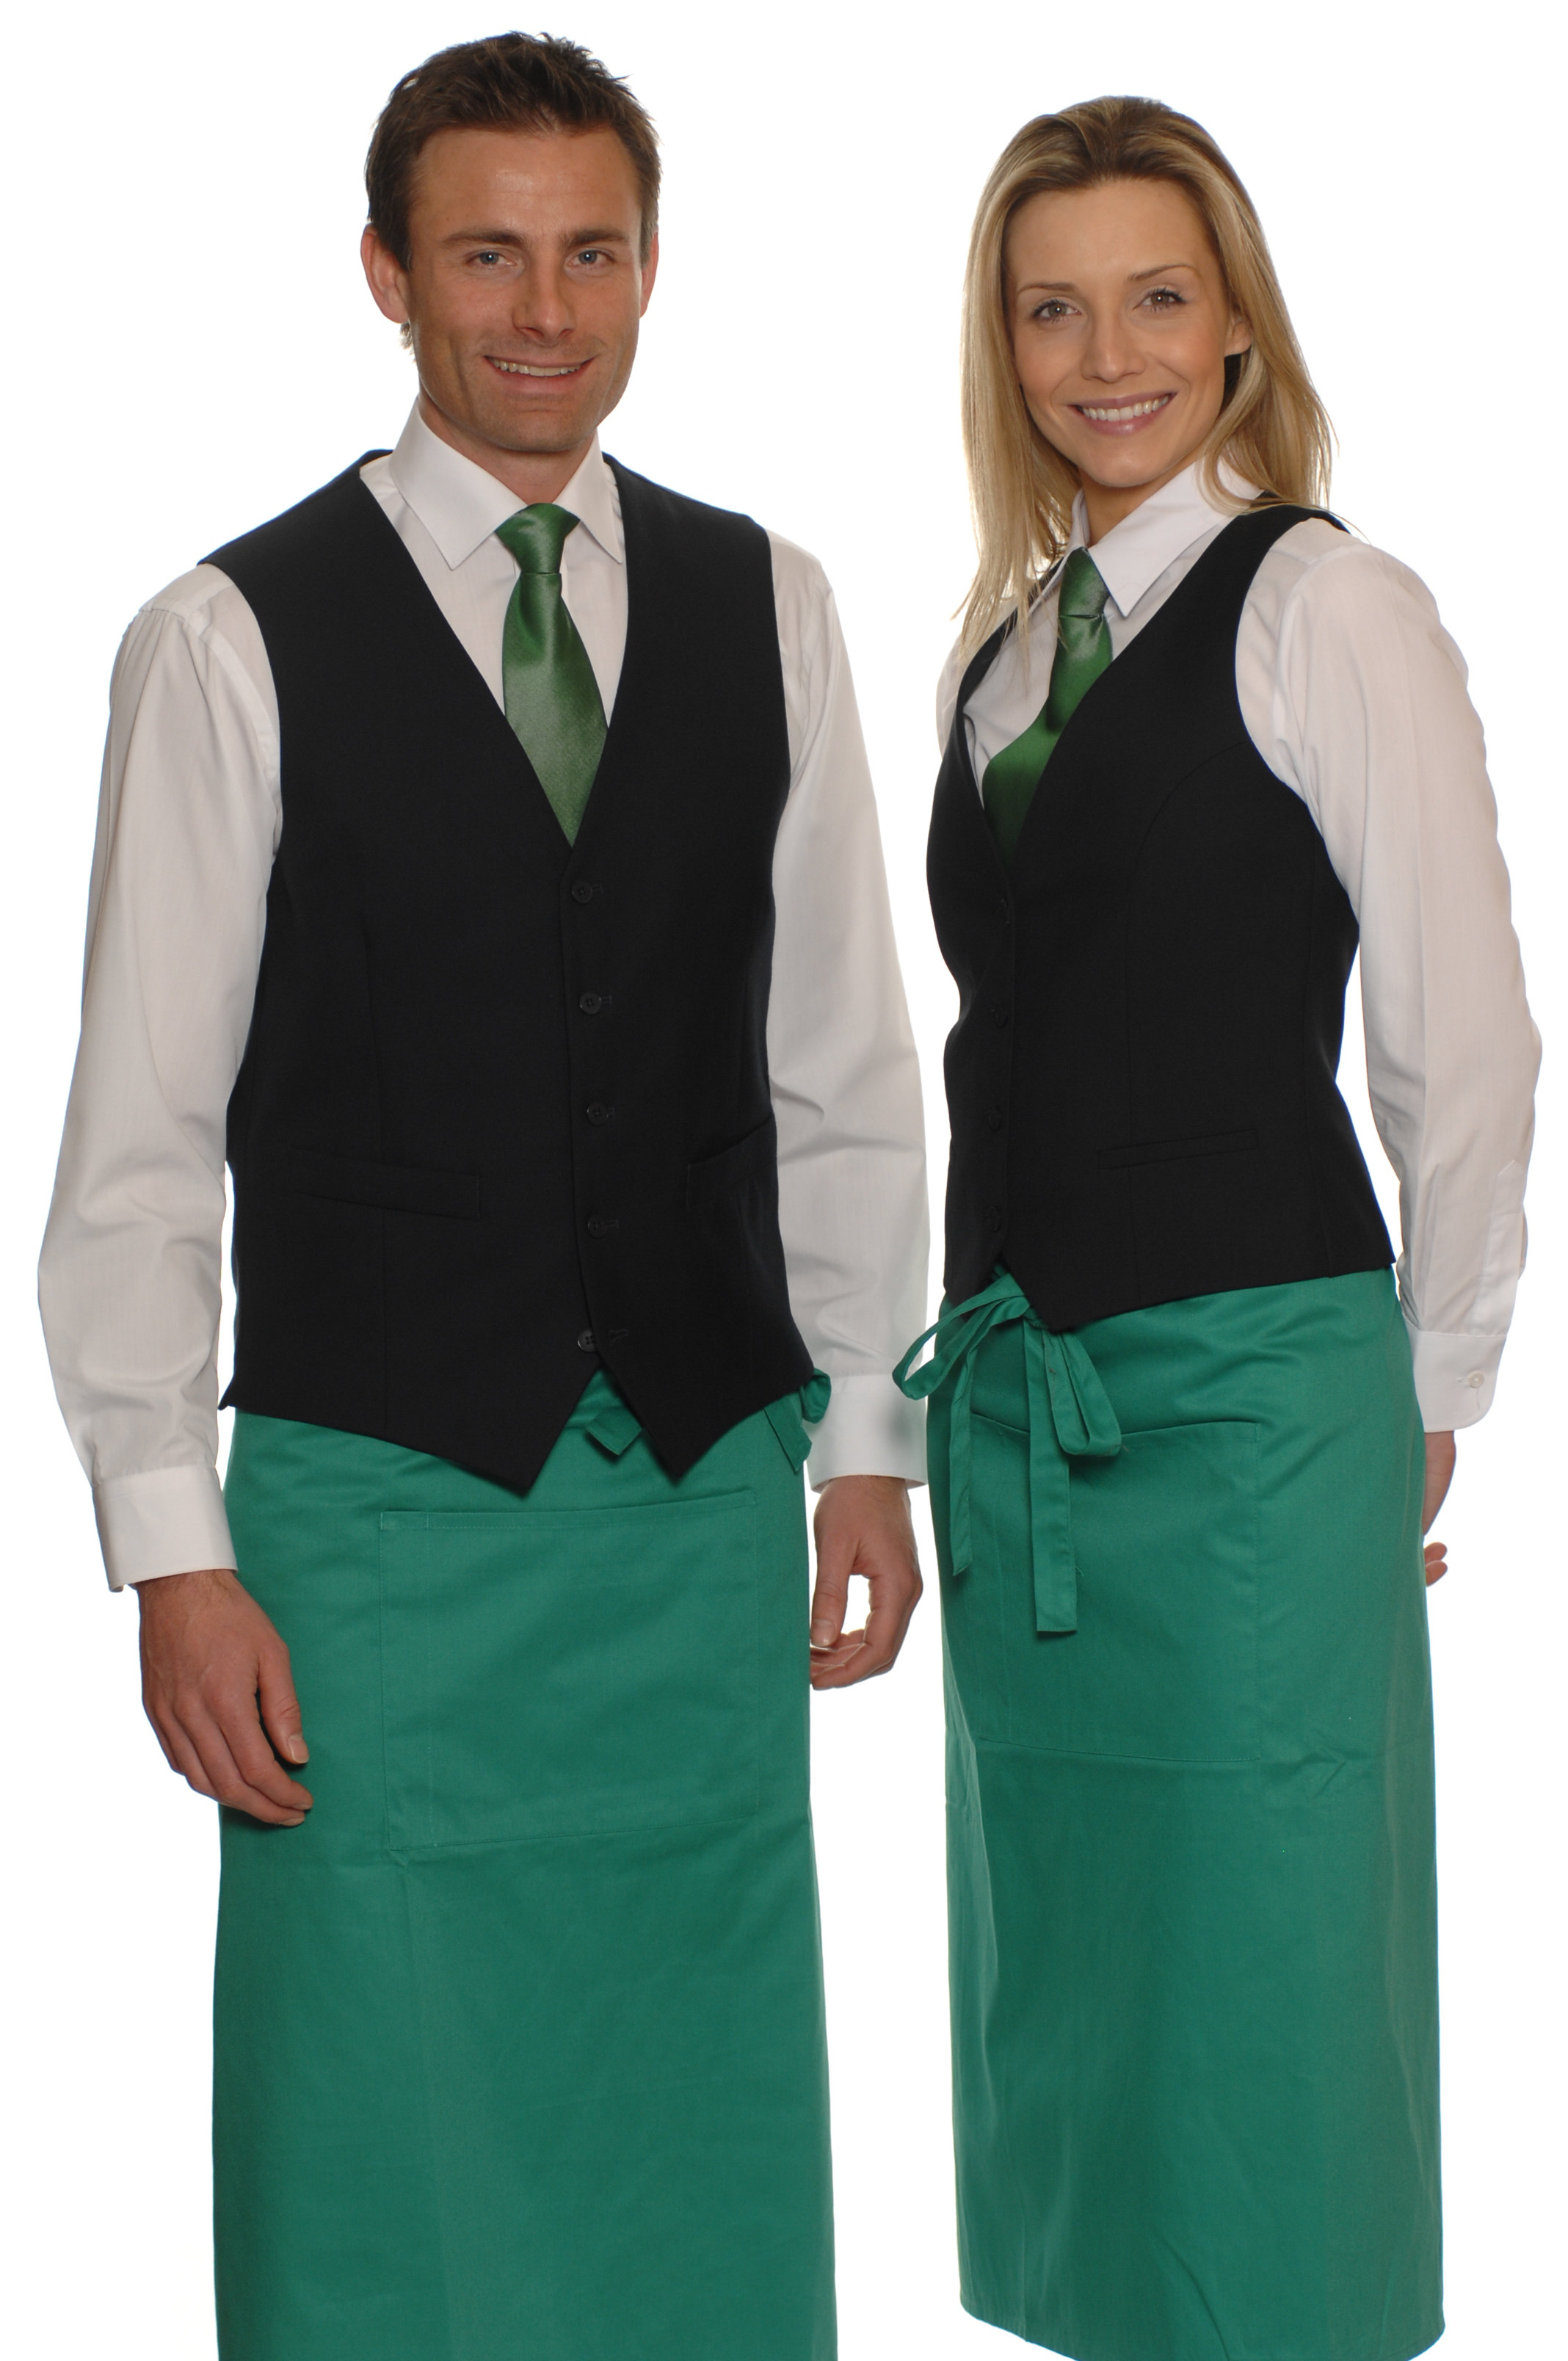 Waiter and waitress in uniform